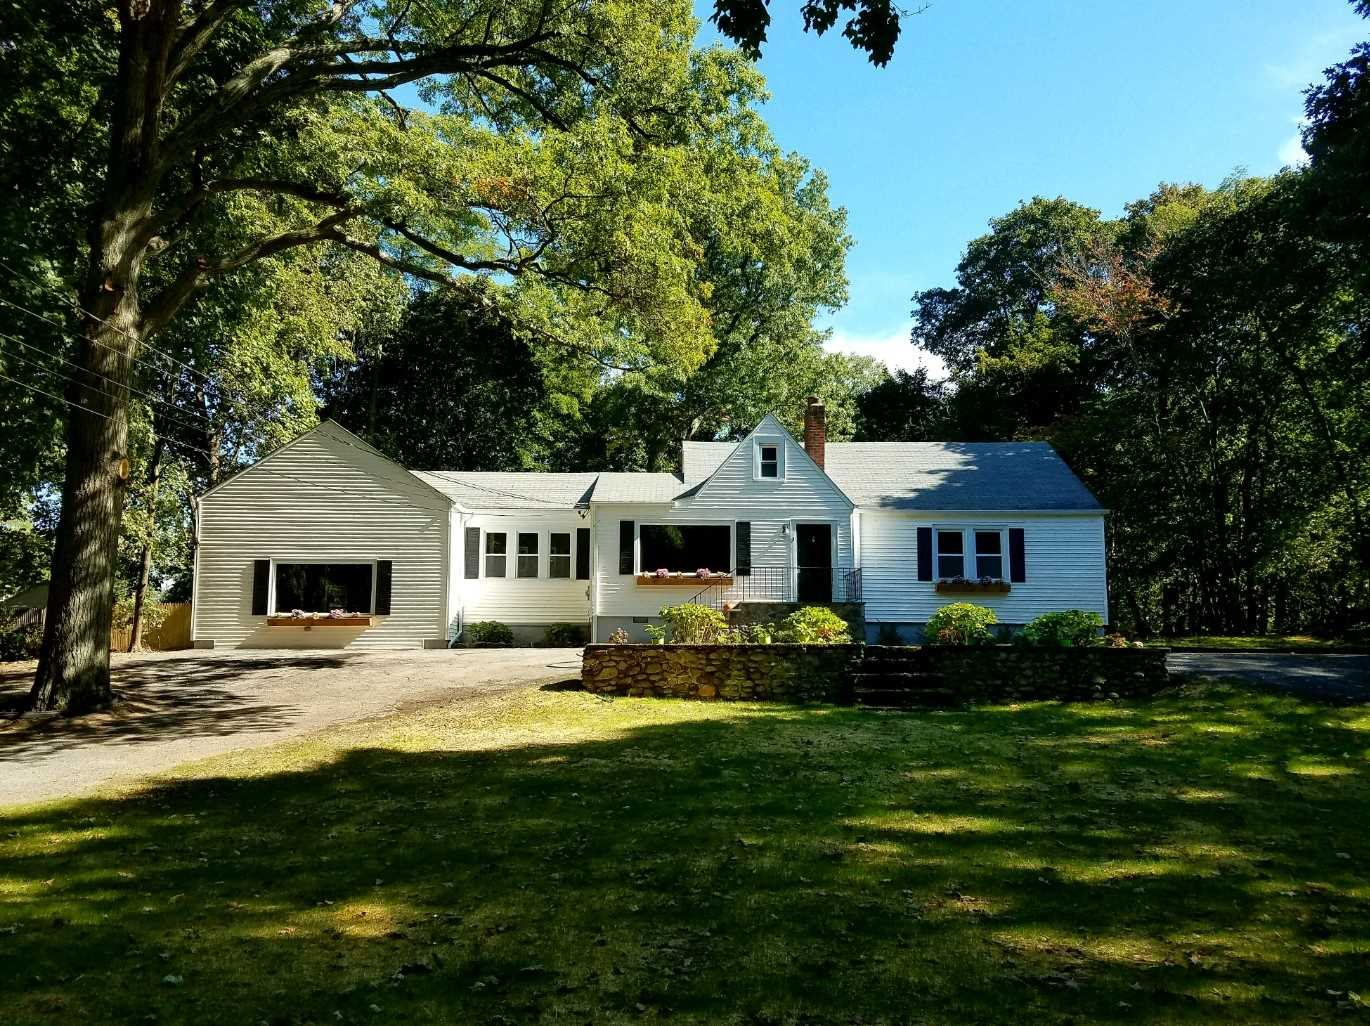 Single Family Home for Sale at 3 MONELL 3 MONELL Beacon, New York 12508 United States